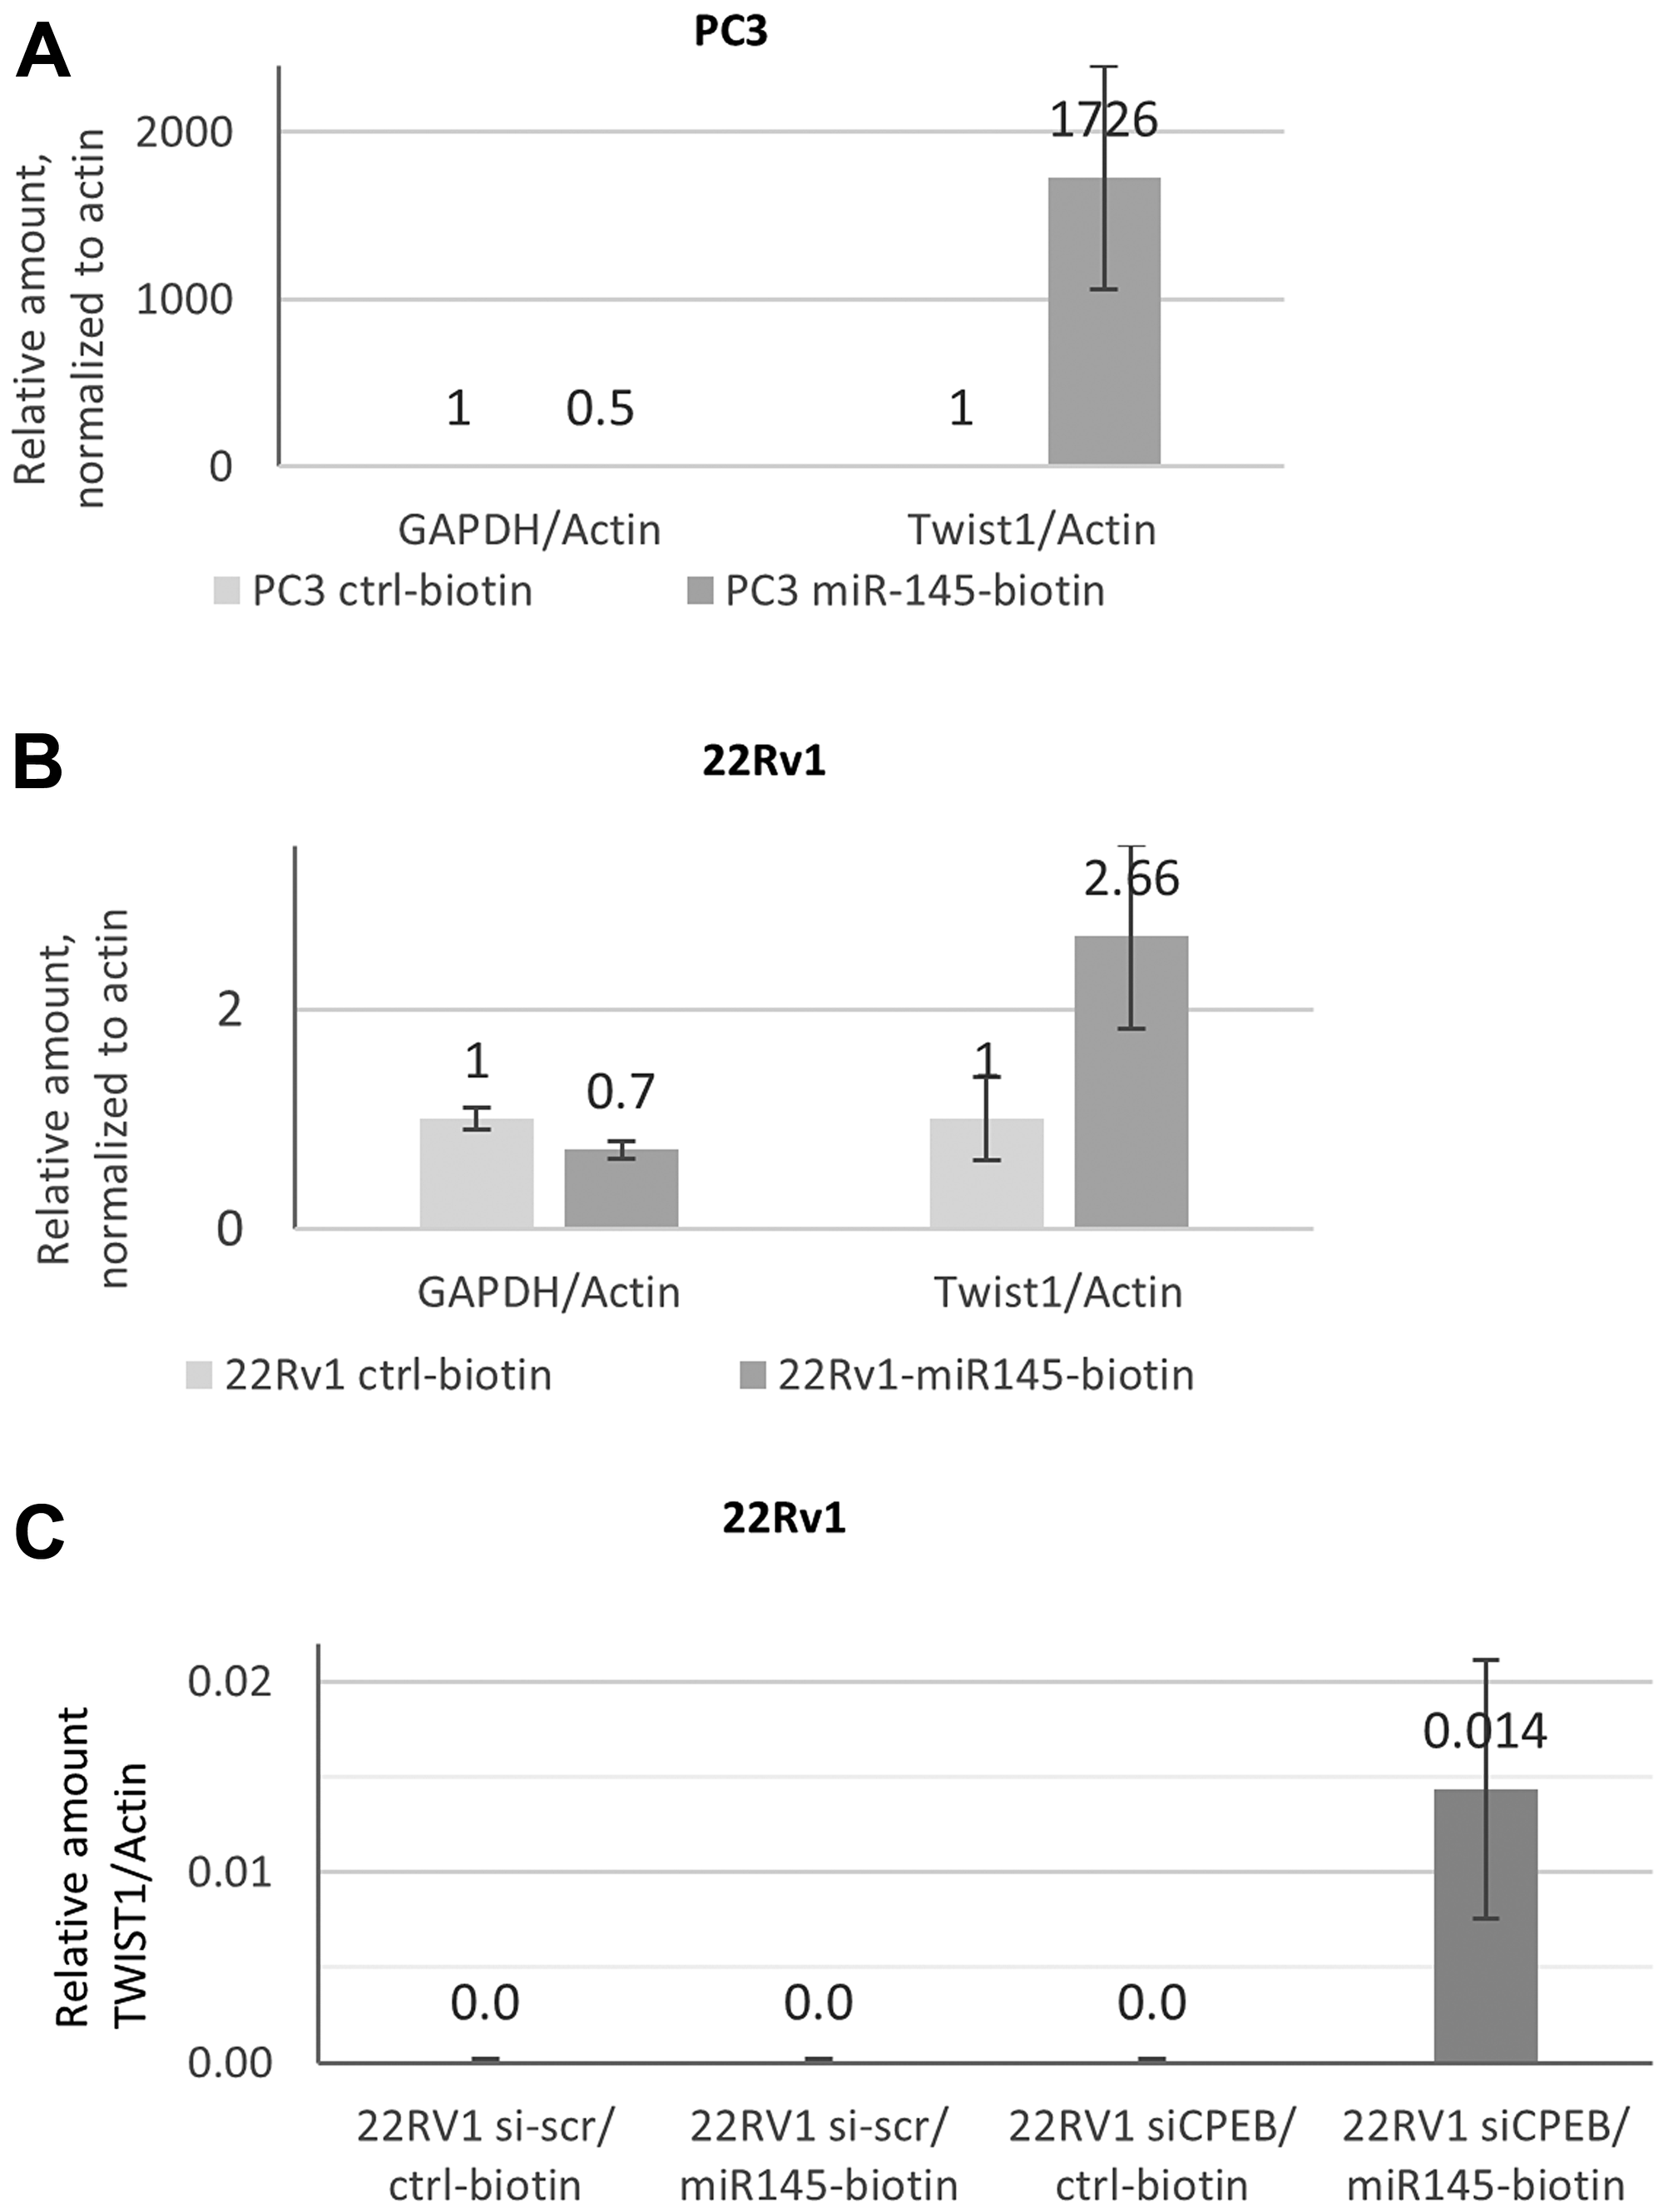 Mir-145-5p interaction with TWIST1 mRNA depends on CPEB1 in prostate cancer cell lines.